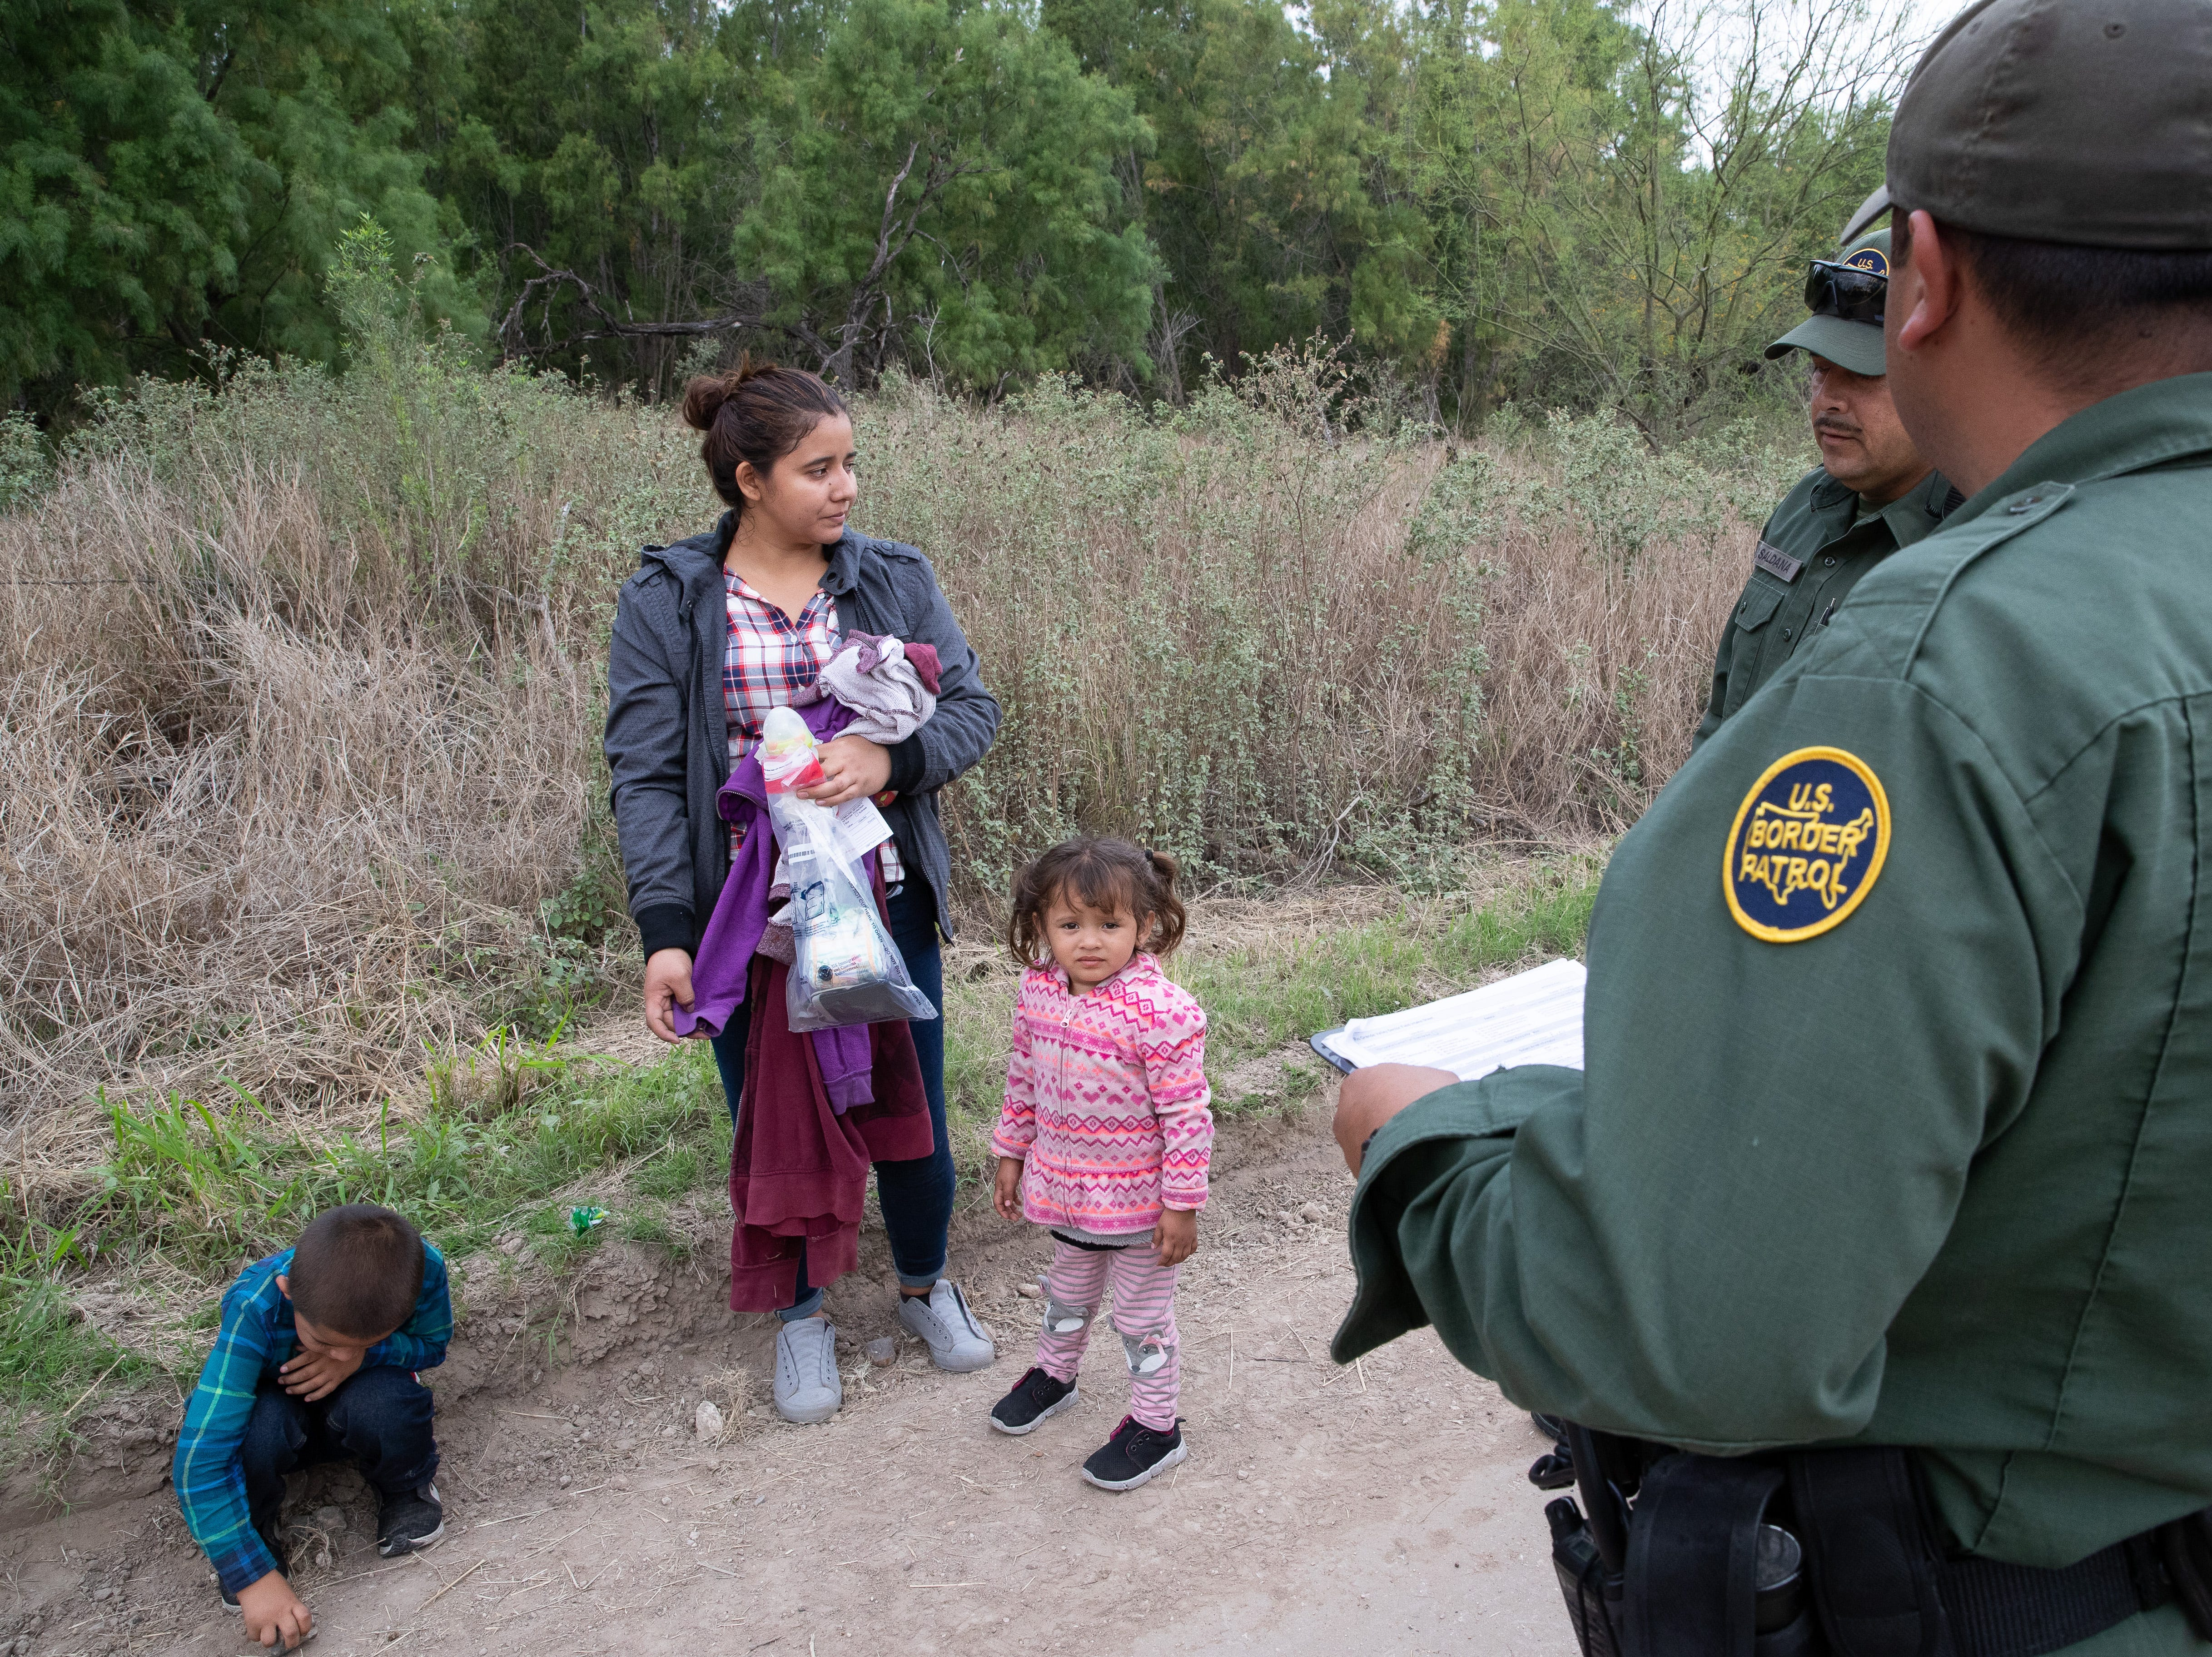 Border Patrol Agents take in to custody a 22-year-old women from El Salvador and her 5 and 3-year-old children after crossing the river from Mexico near Mission, Texas, on Tuesday, Feb. 26, 2019.